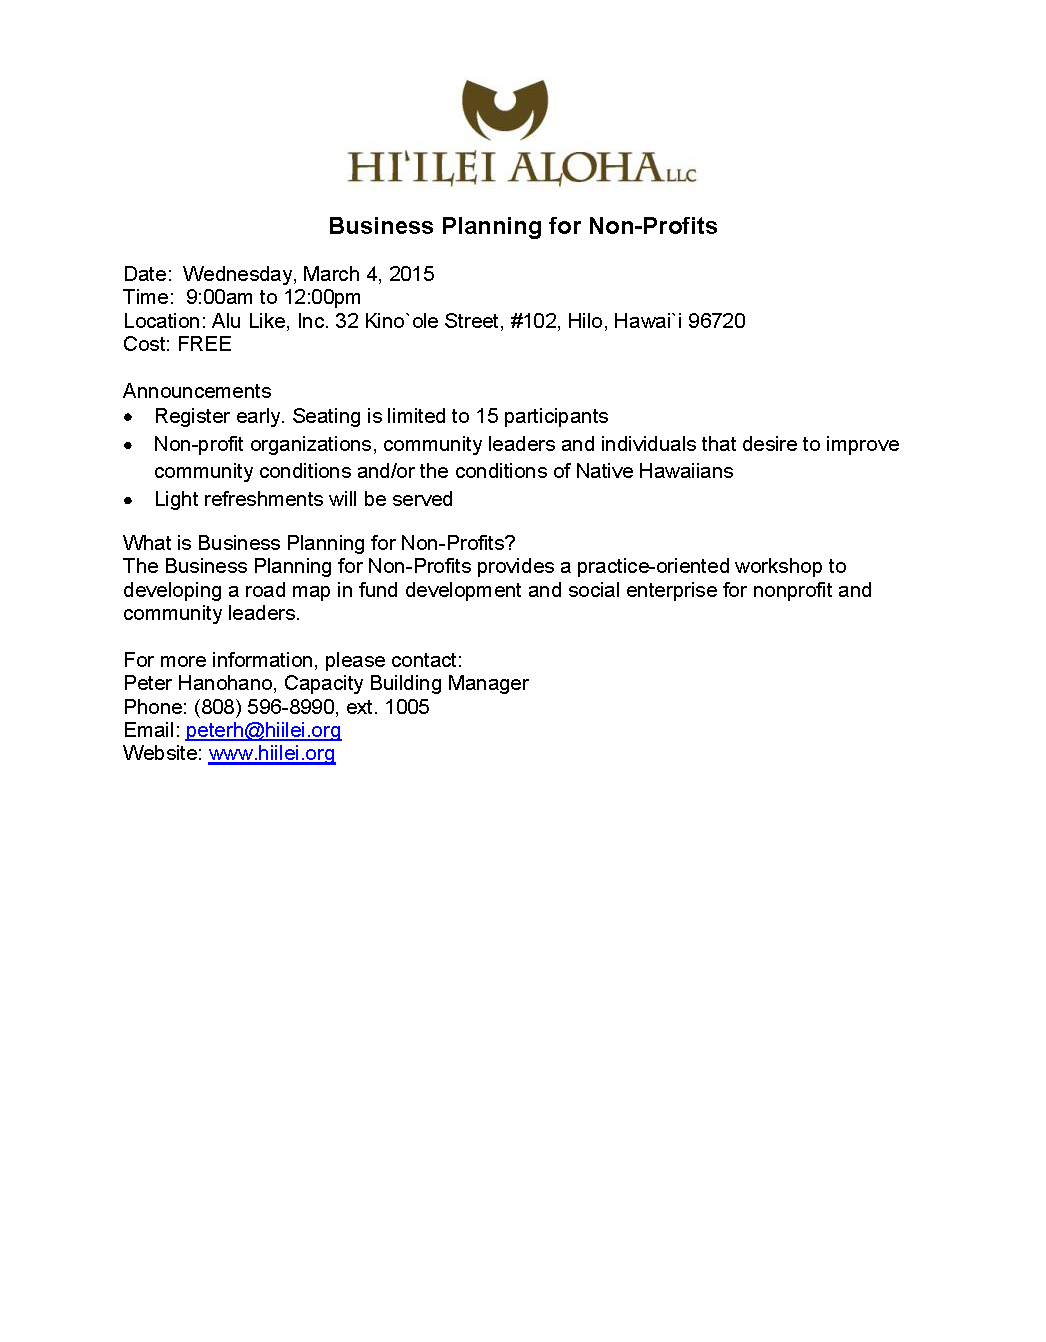 Hiilei Aloha, LLC - Registration Announcement